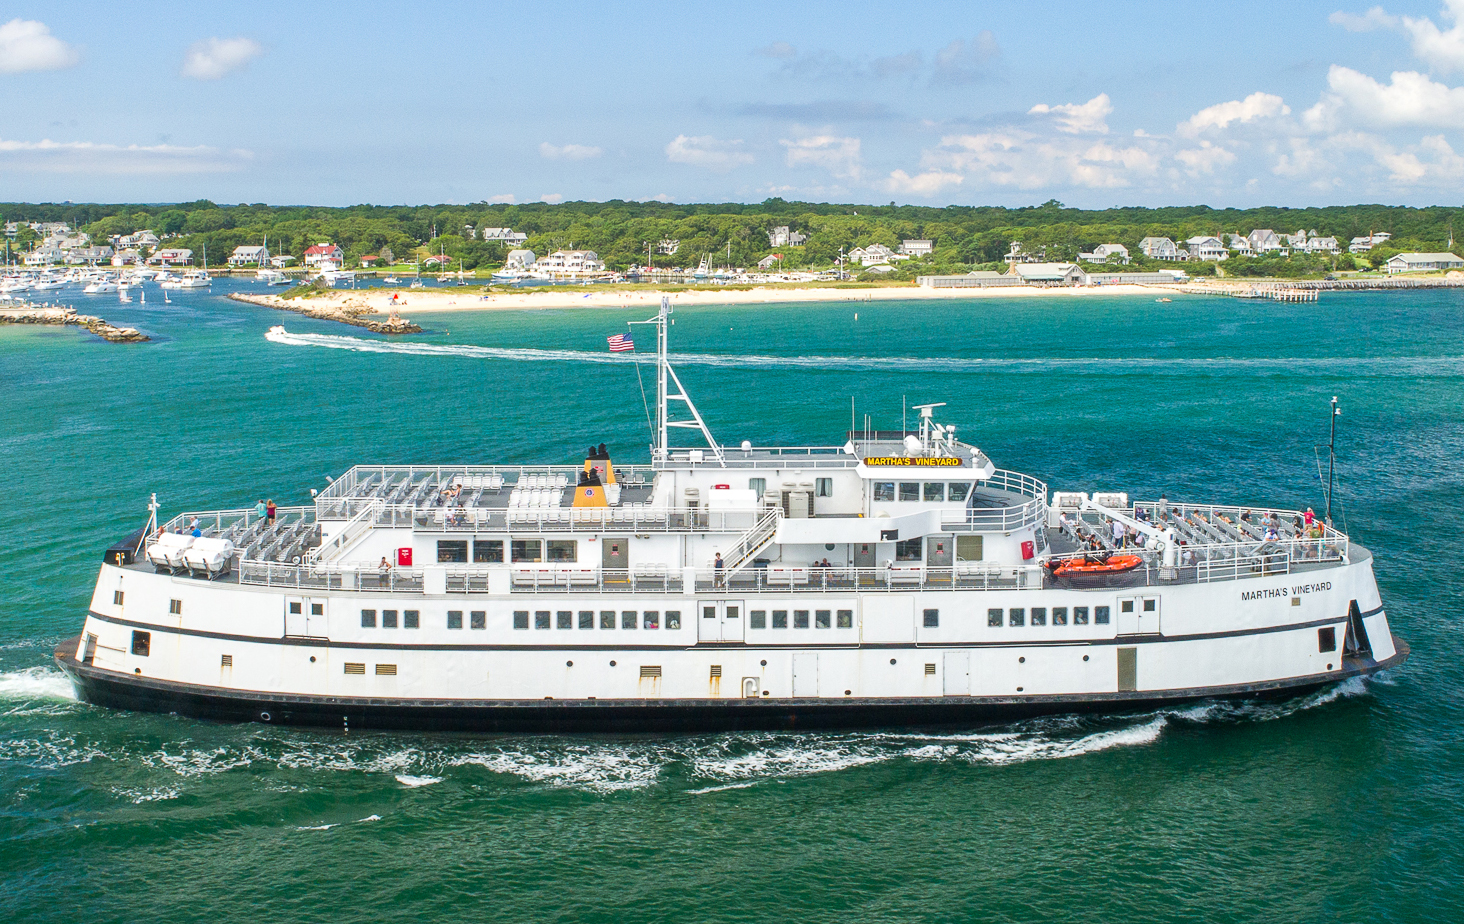 The M/V Martha's Vineyard